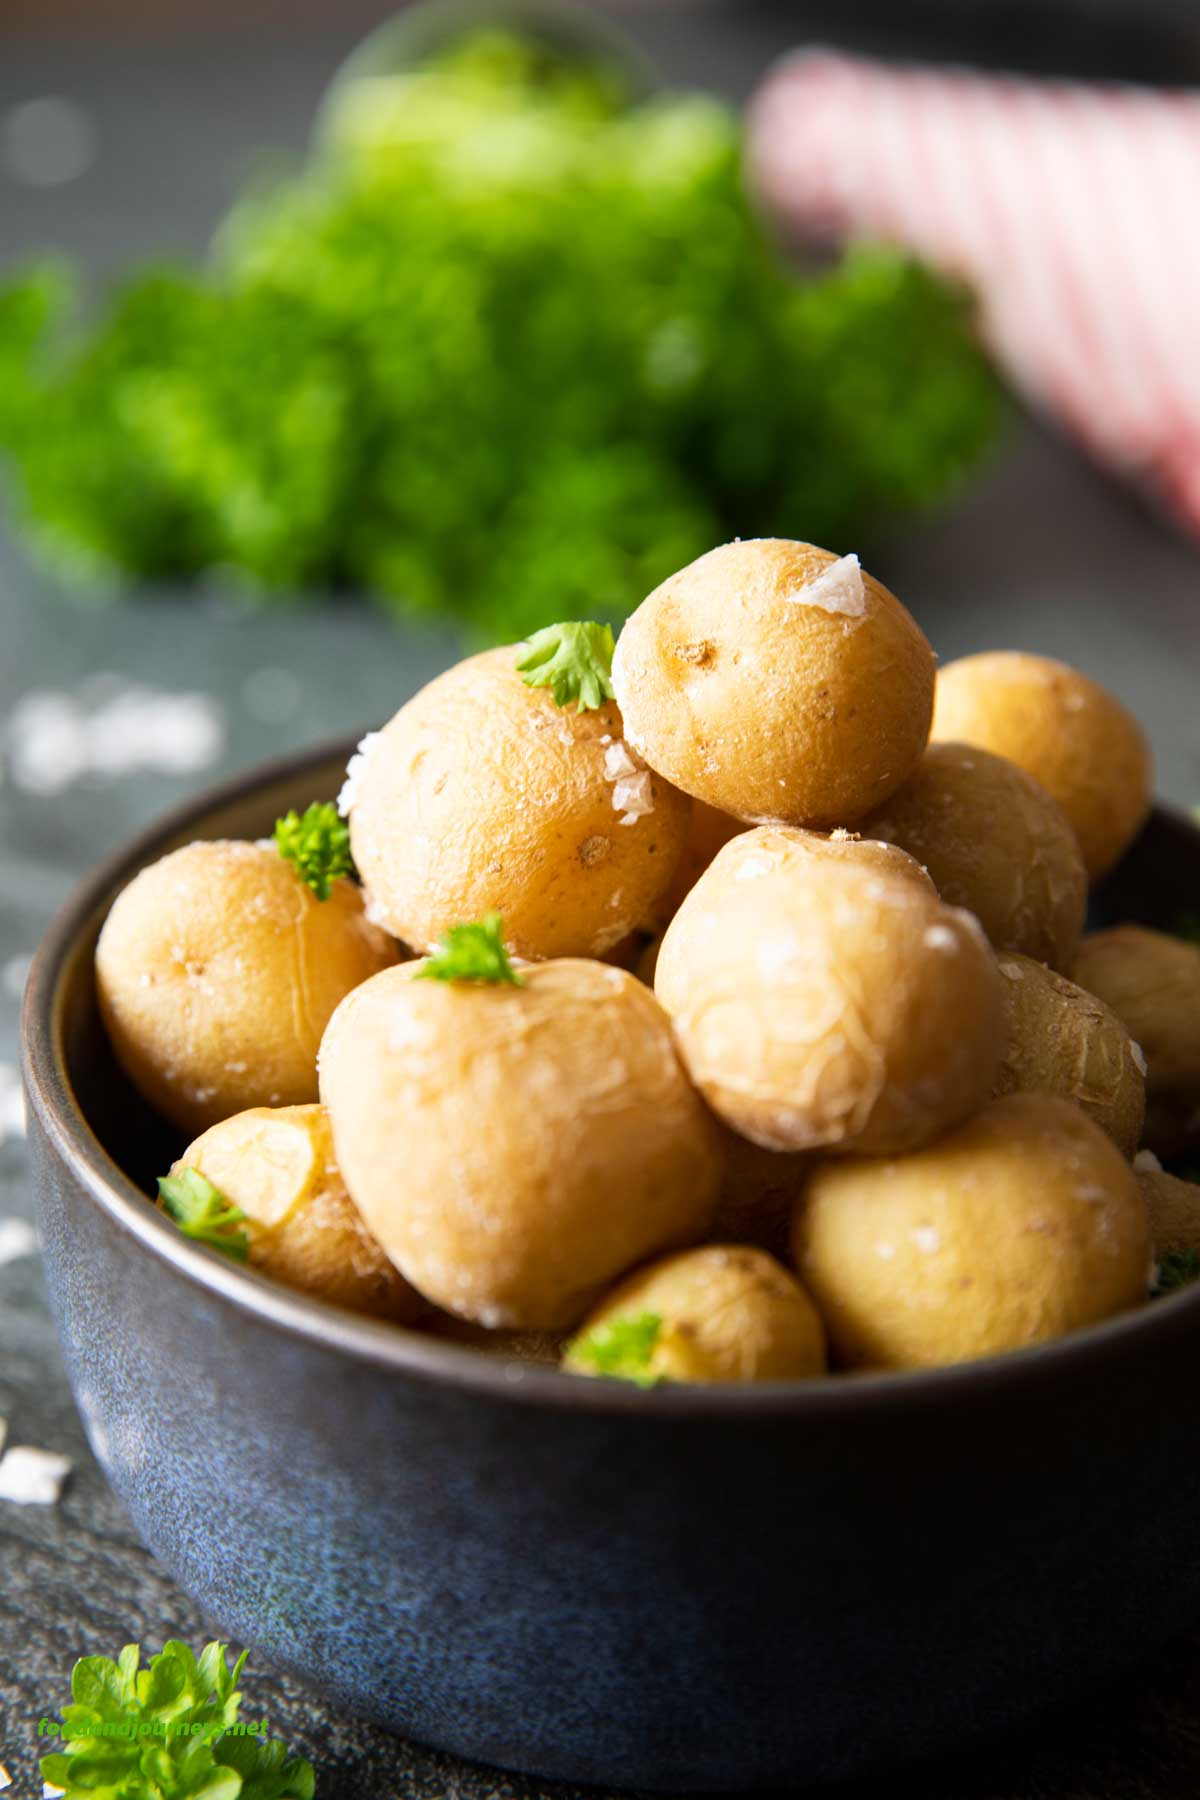 A closer shot of a bowl of freshly baked salt-crusted potatoes, ready for serving.